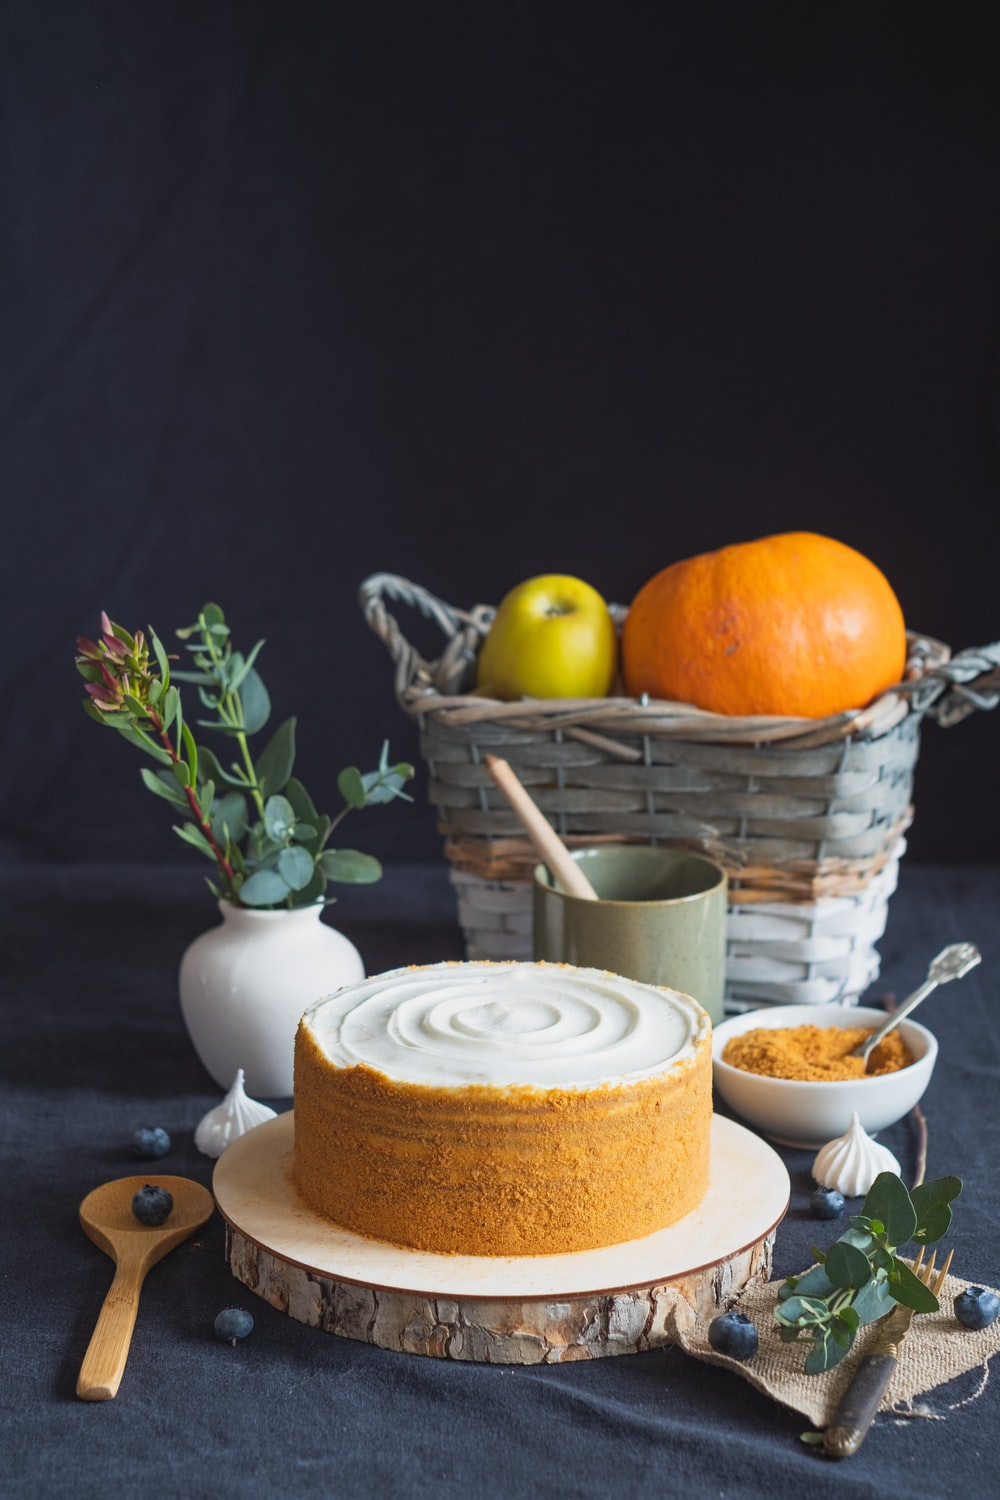 orange fruit on white ceramic plate beside white ceramic cup with saucer